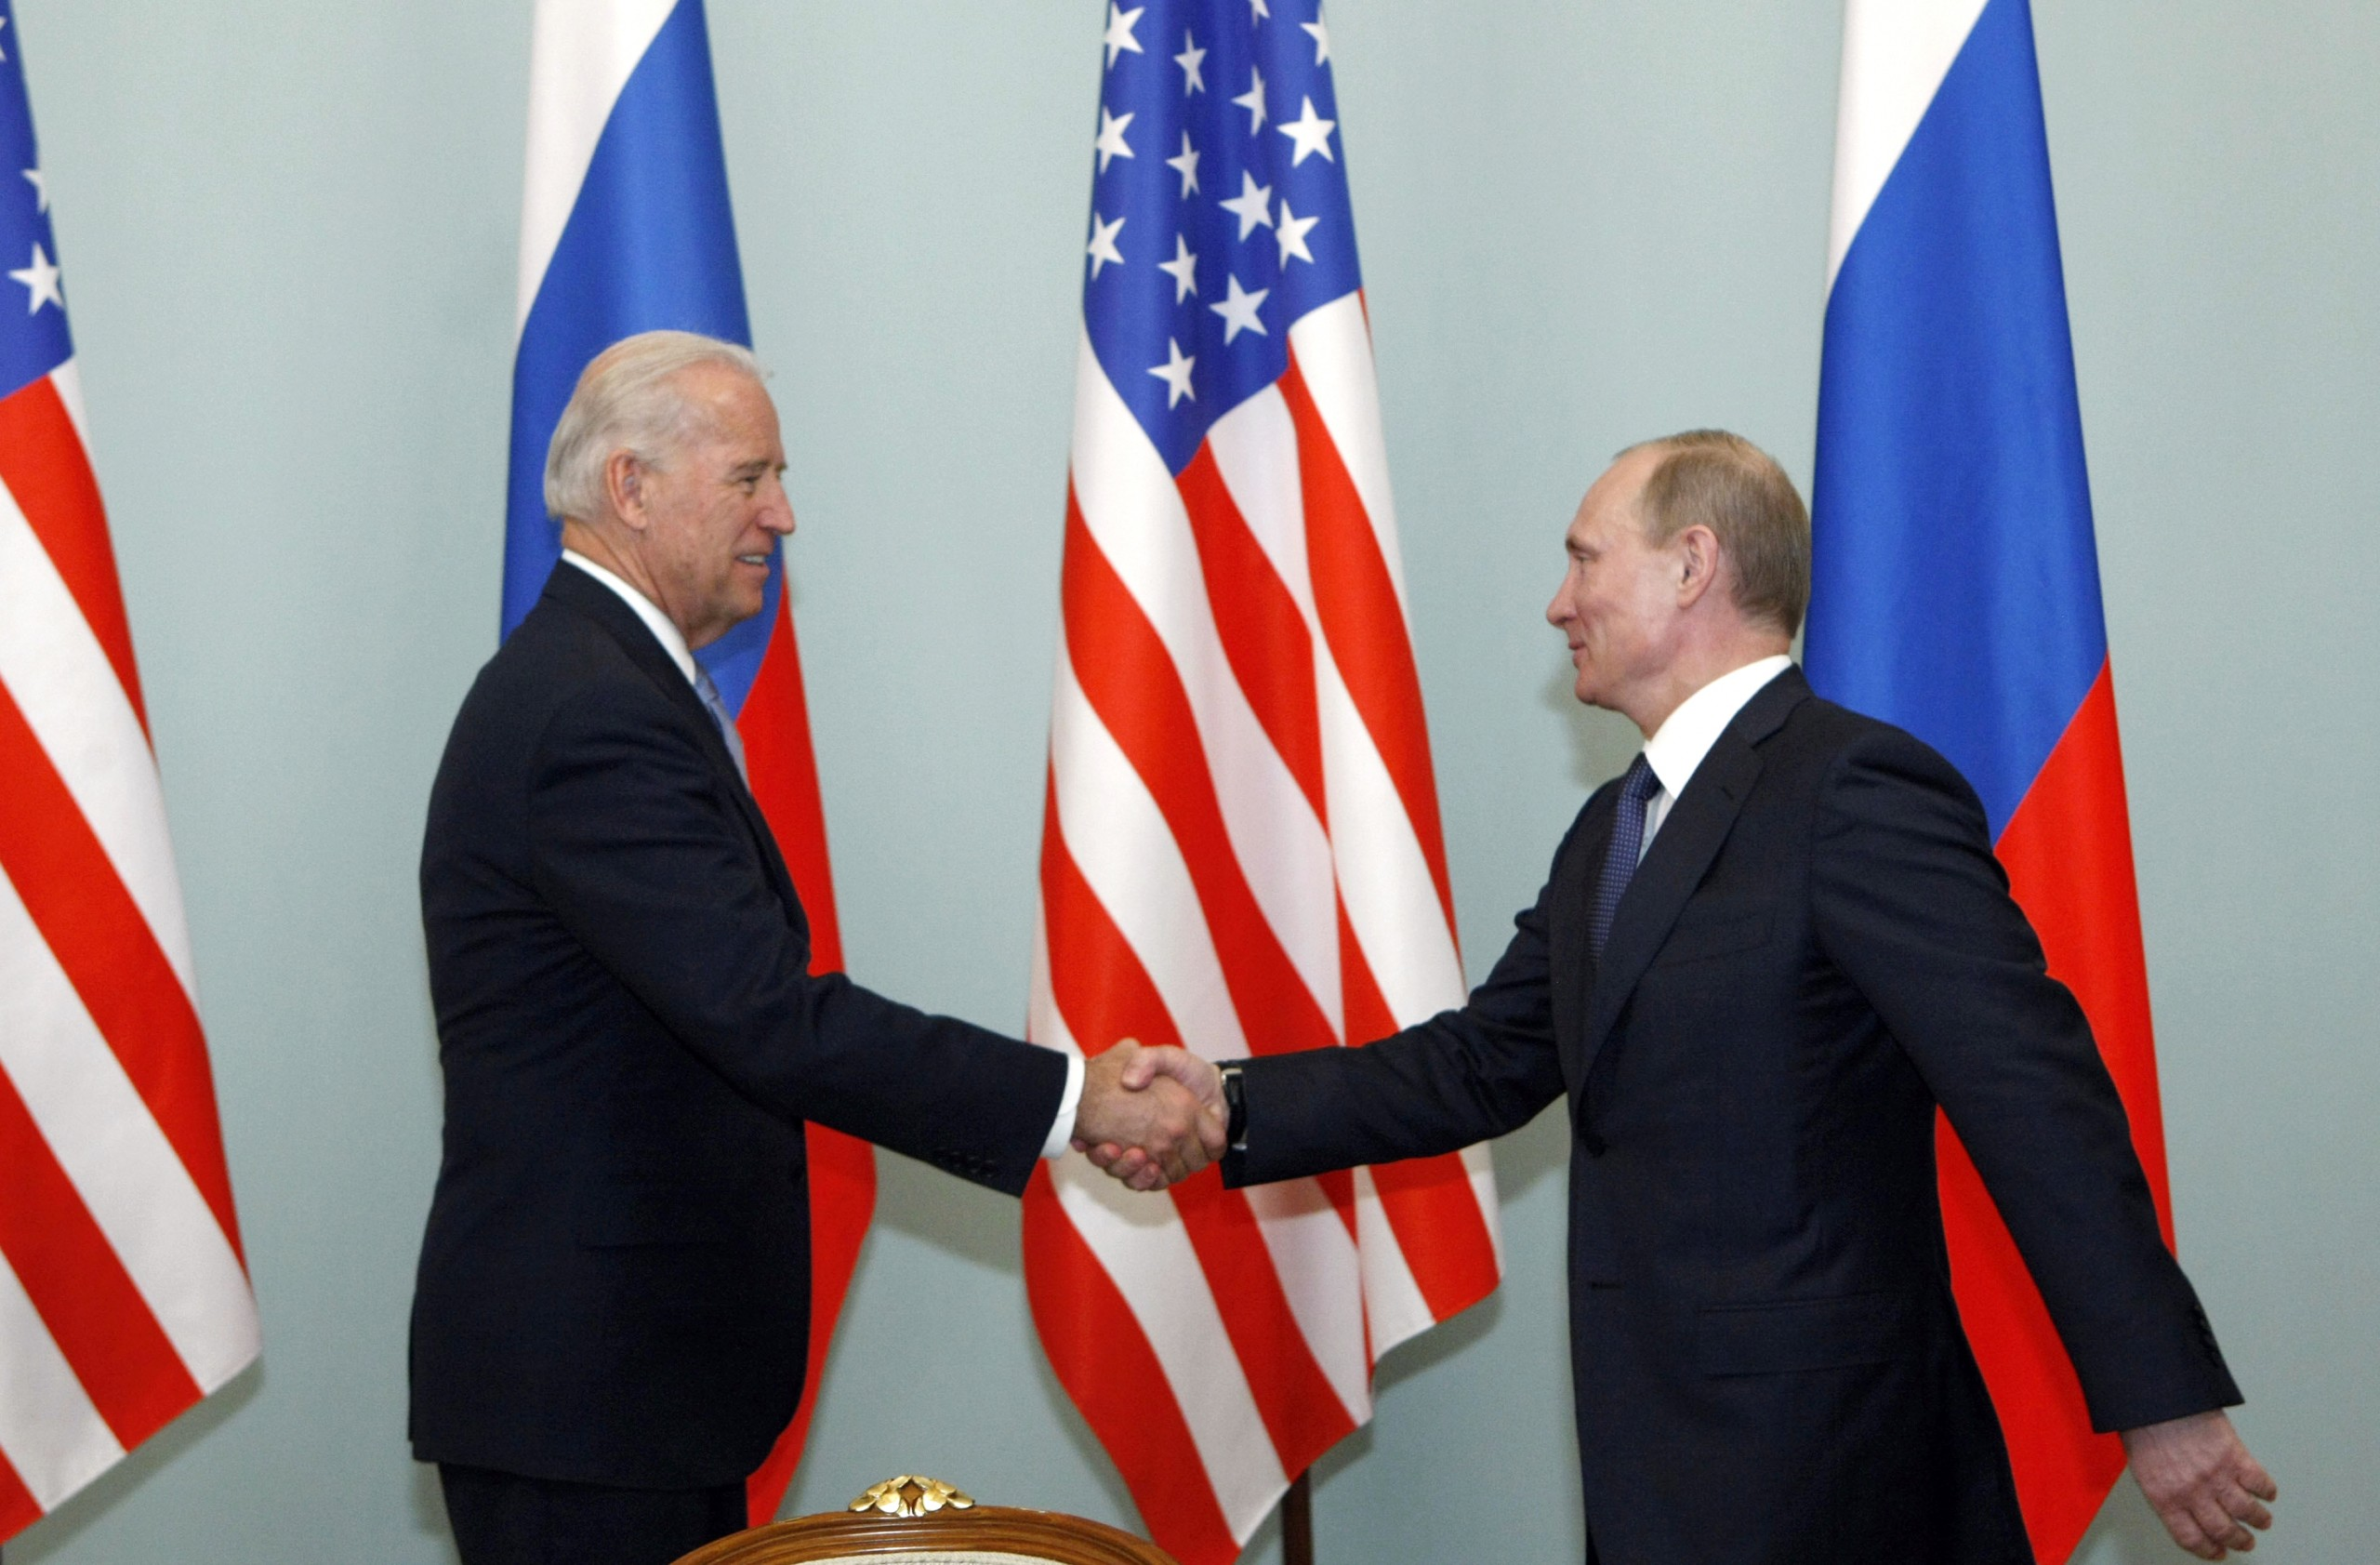 In this March 10, 2011 file photo, then U.S. Vice President Joe Biden, left, shakes hands with Russian Prime Minister Vladimir Putin in Moscow. (Alexander Zemlianichenko/AP)